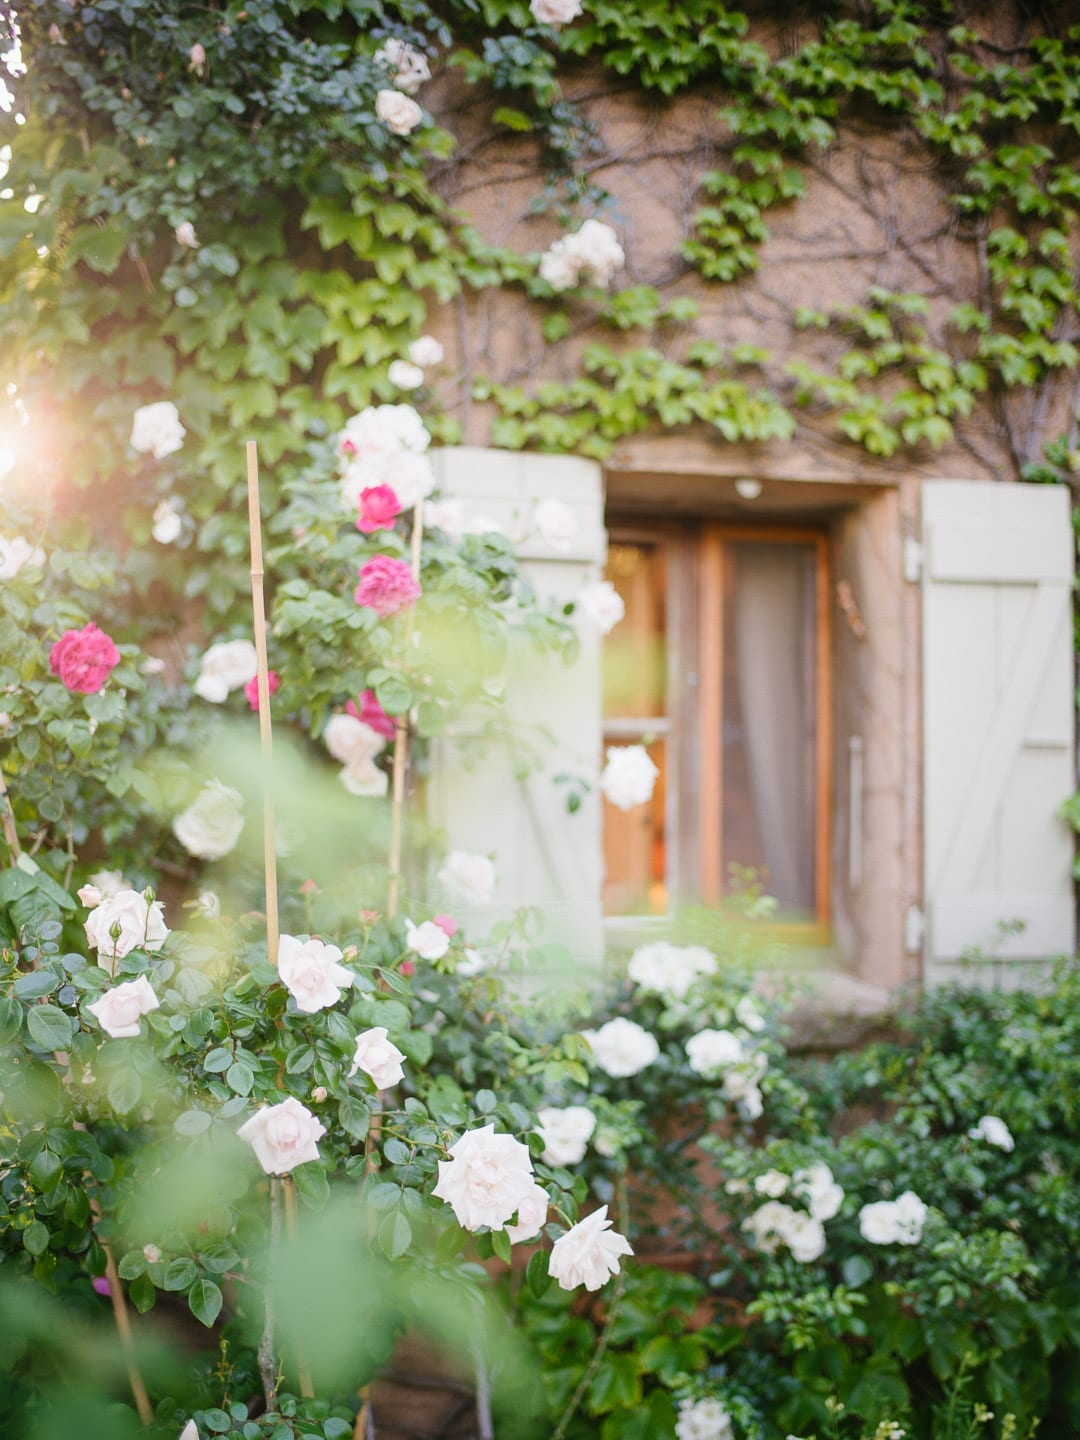 Pink and white roses on a trellis by a window of a French cottage - First Glimpse of France